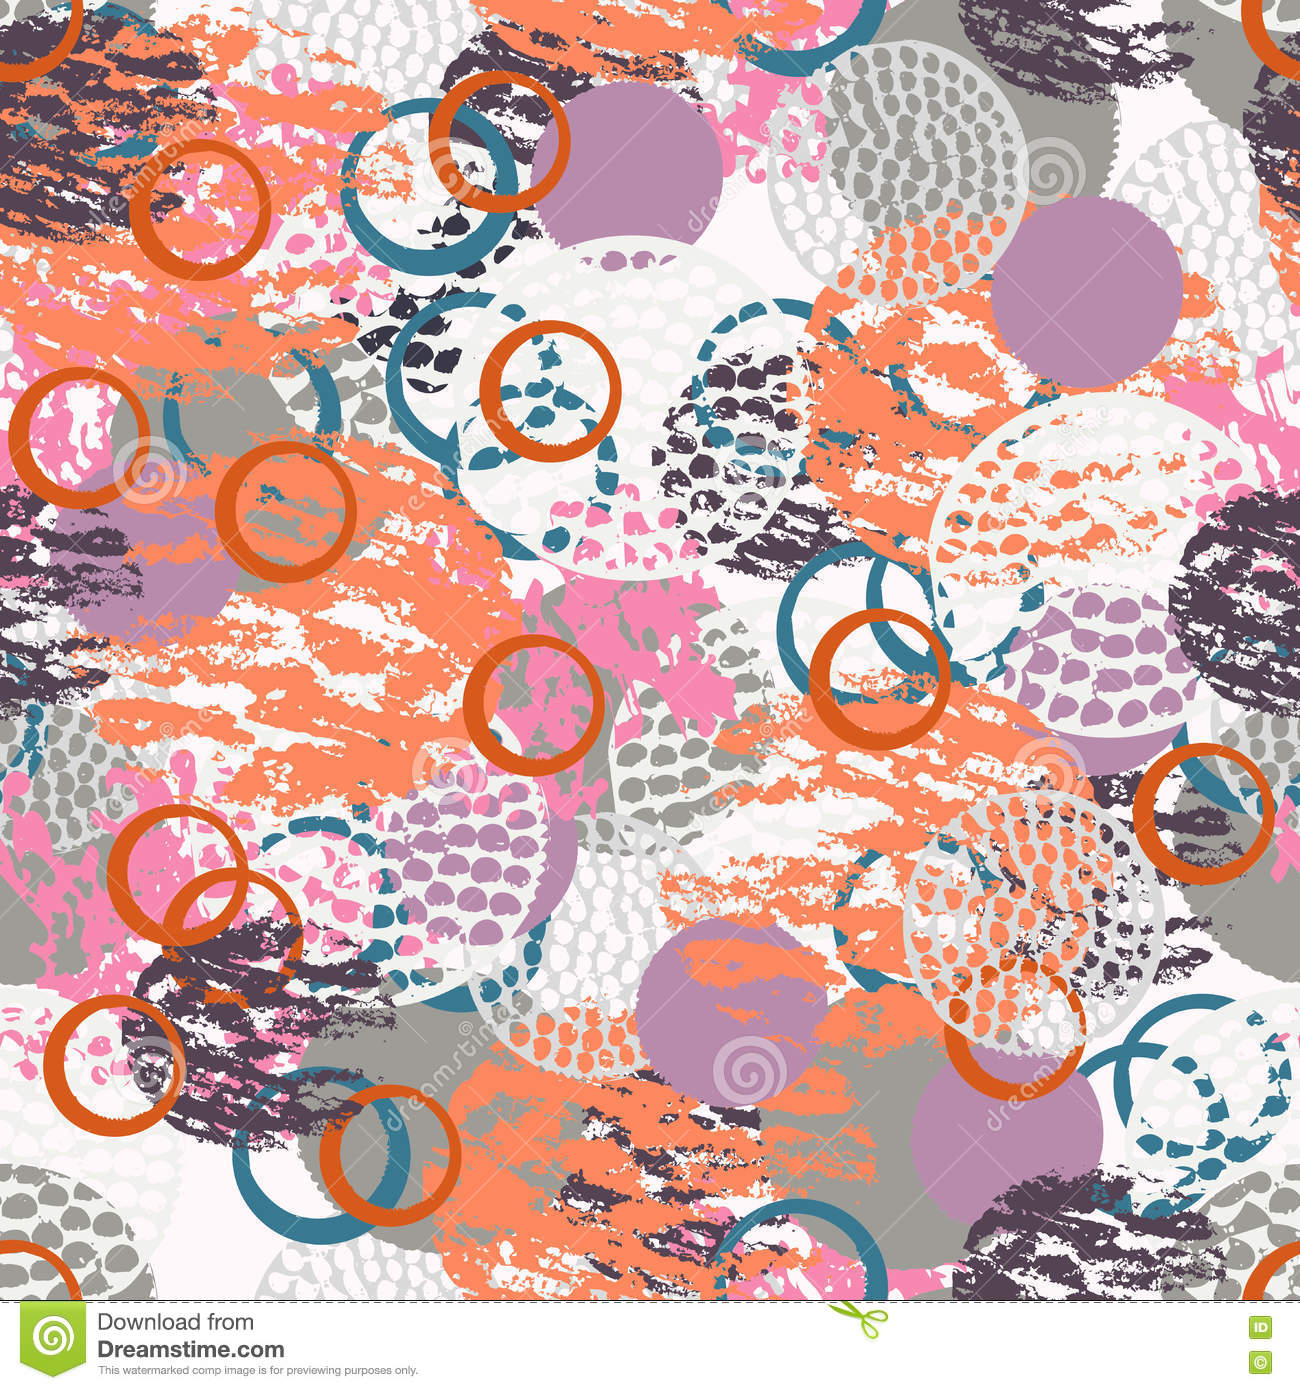 Colorful grunge abstract seamless pattern with different shabby round shapes.